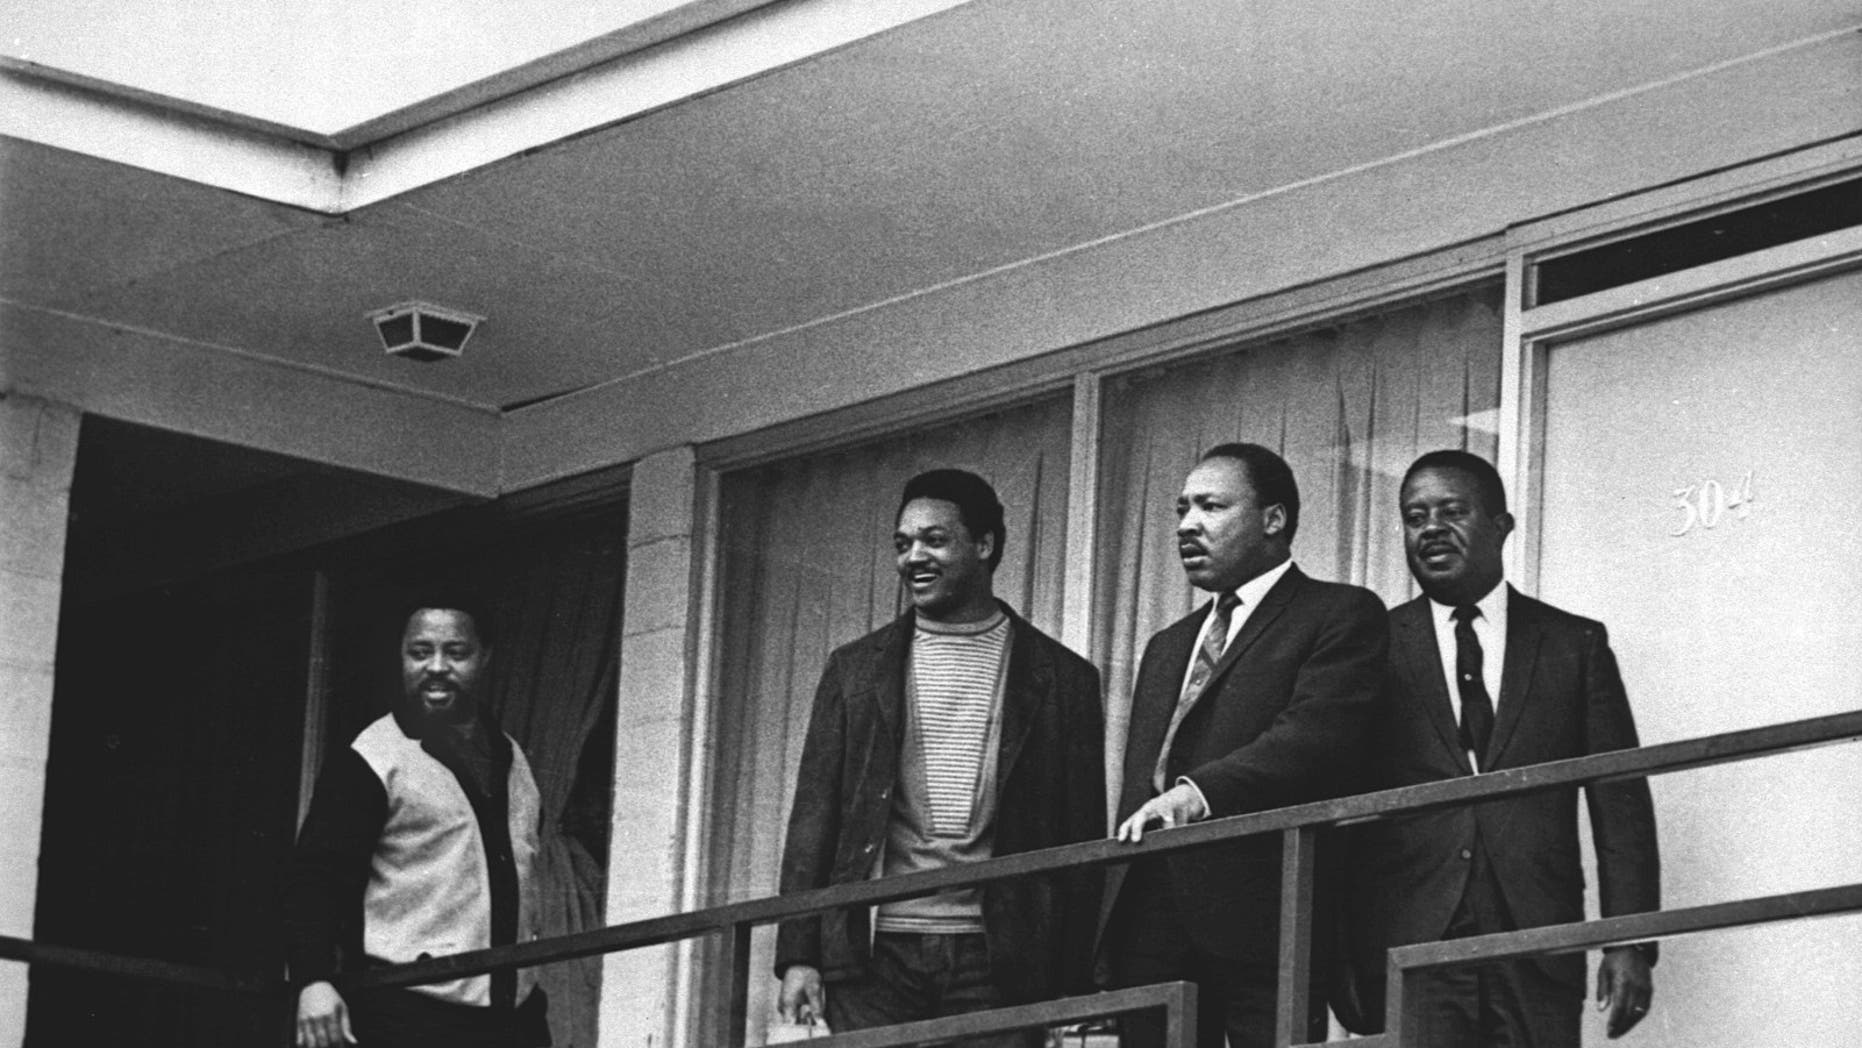 FILE - In this April 3, 1968 file photo, the Rev. Martin Luther King Jr. stands with other civil rights leaders on the balcony of the Lorraine Motel in Memphis, Tenn., a day before he was assassinated at approximately the same place. (AP Photo, File)